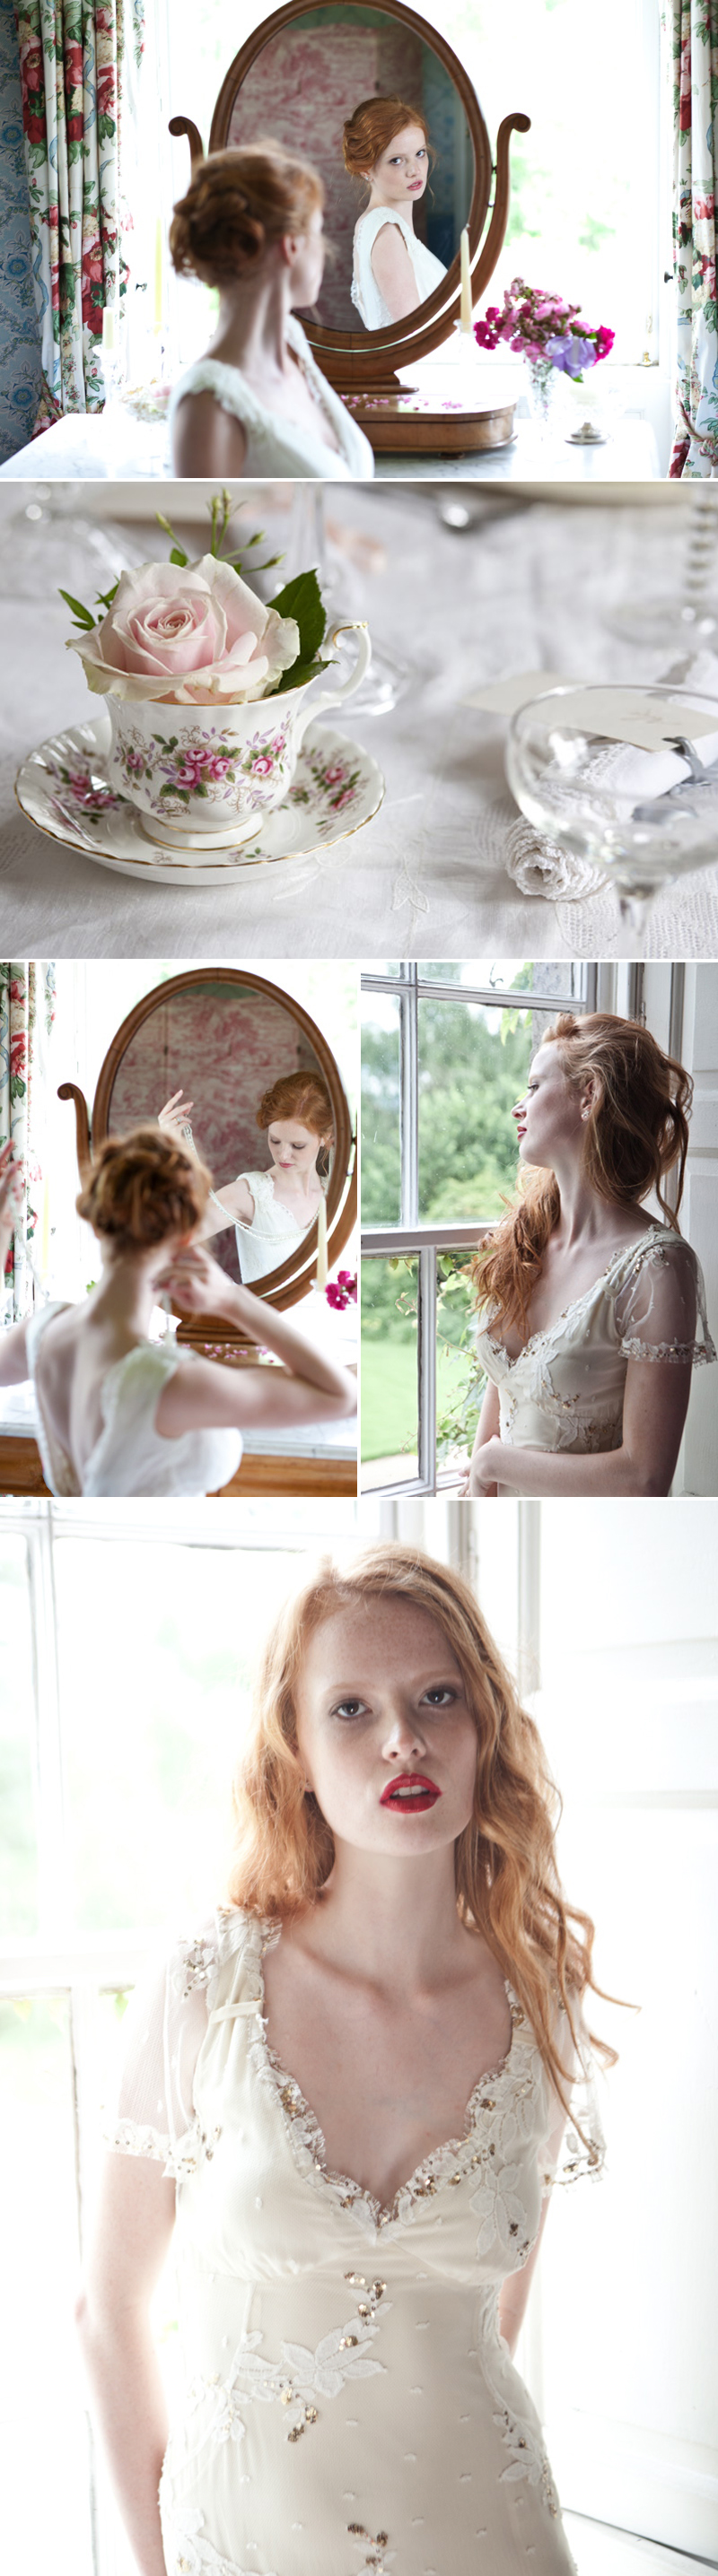 coco-wedding-venues-pennard-house-vintage-styled-shoot-layer-1